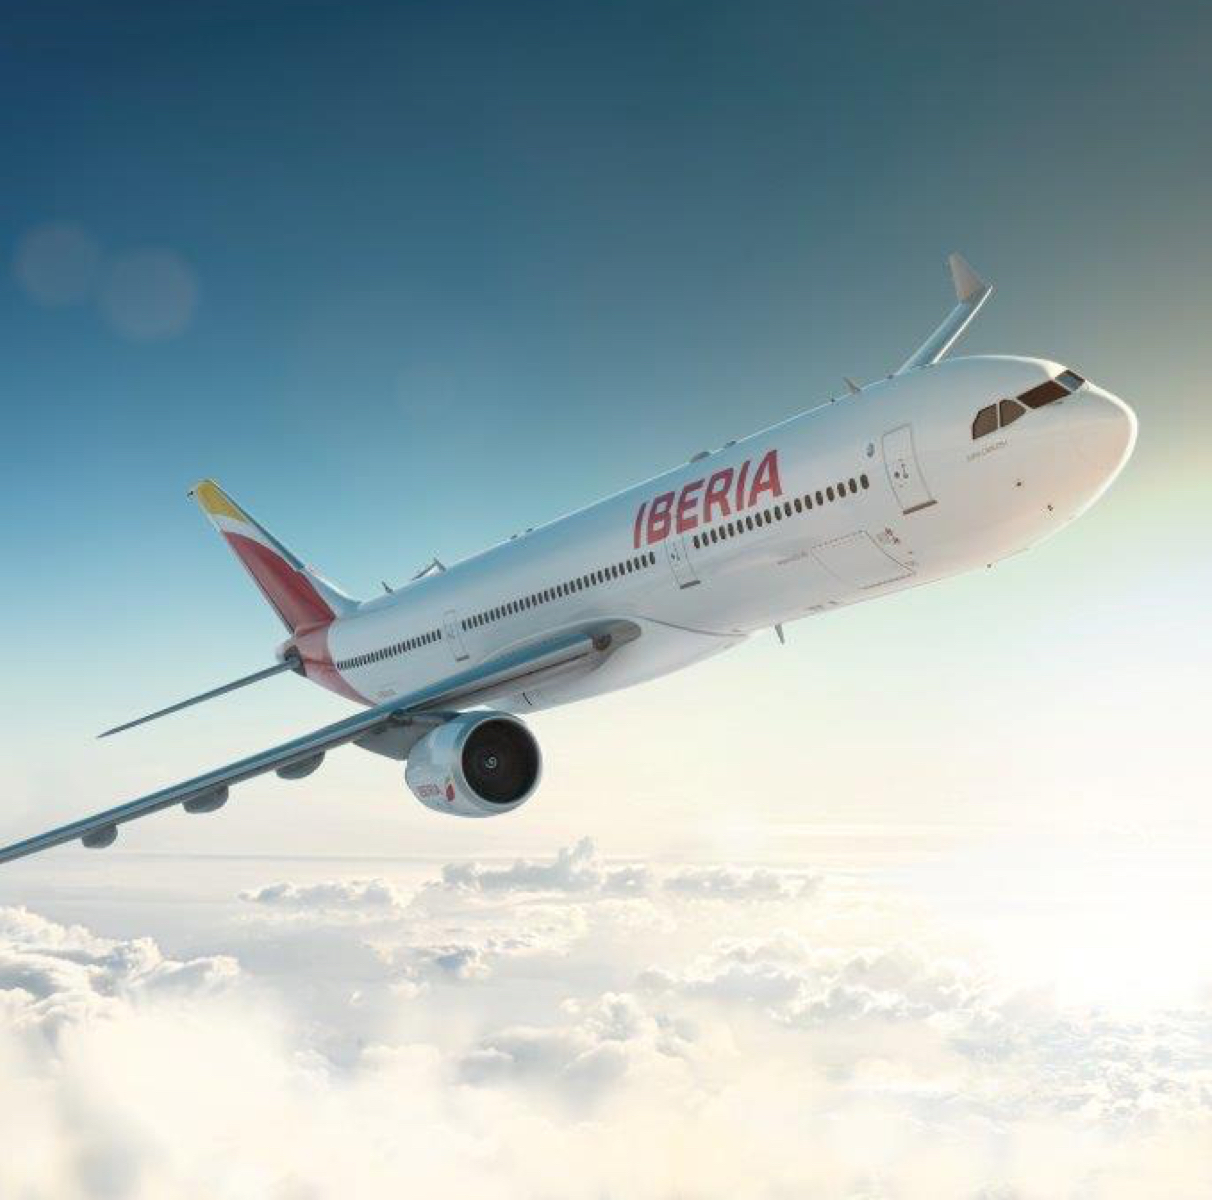 Spanish flagship airline Iberia to resume some flights on July 1